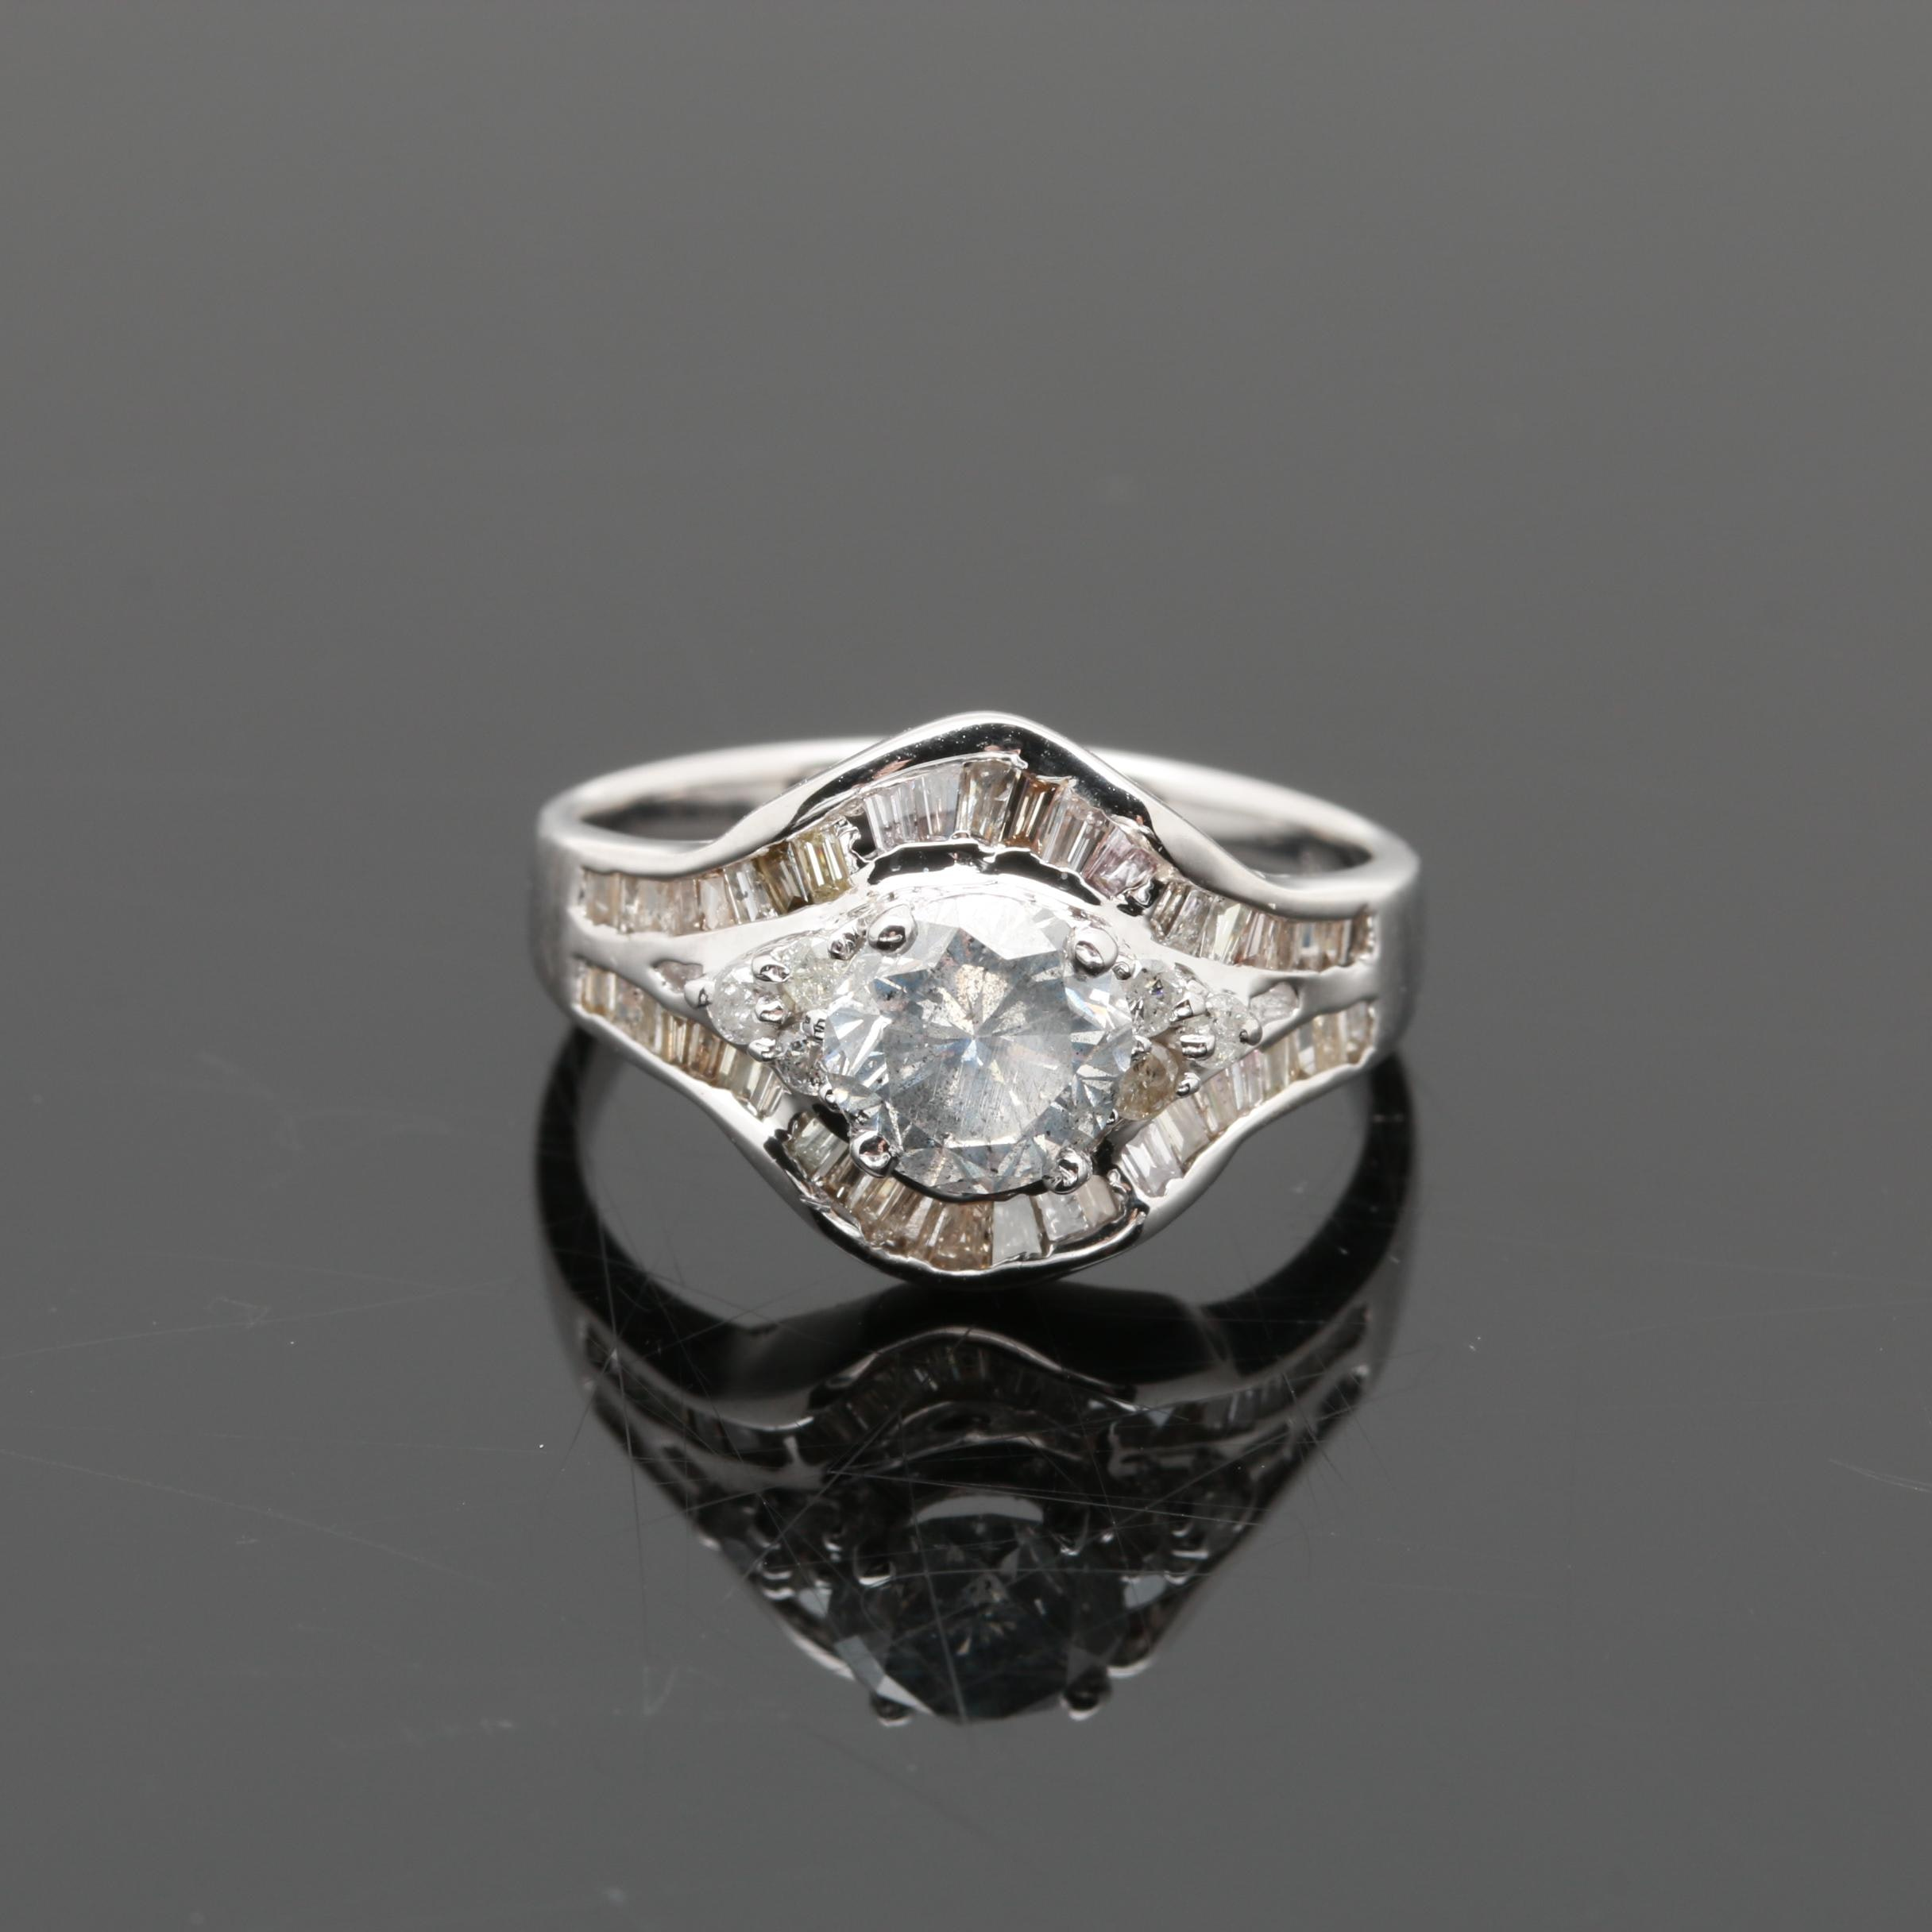 18K White Gold 1.62 CTW Diamond Ring